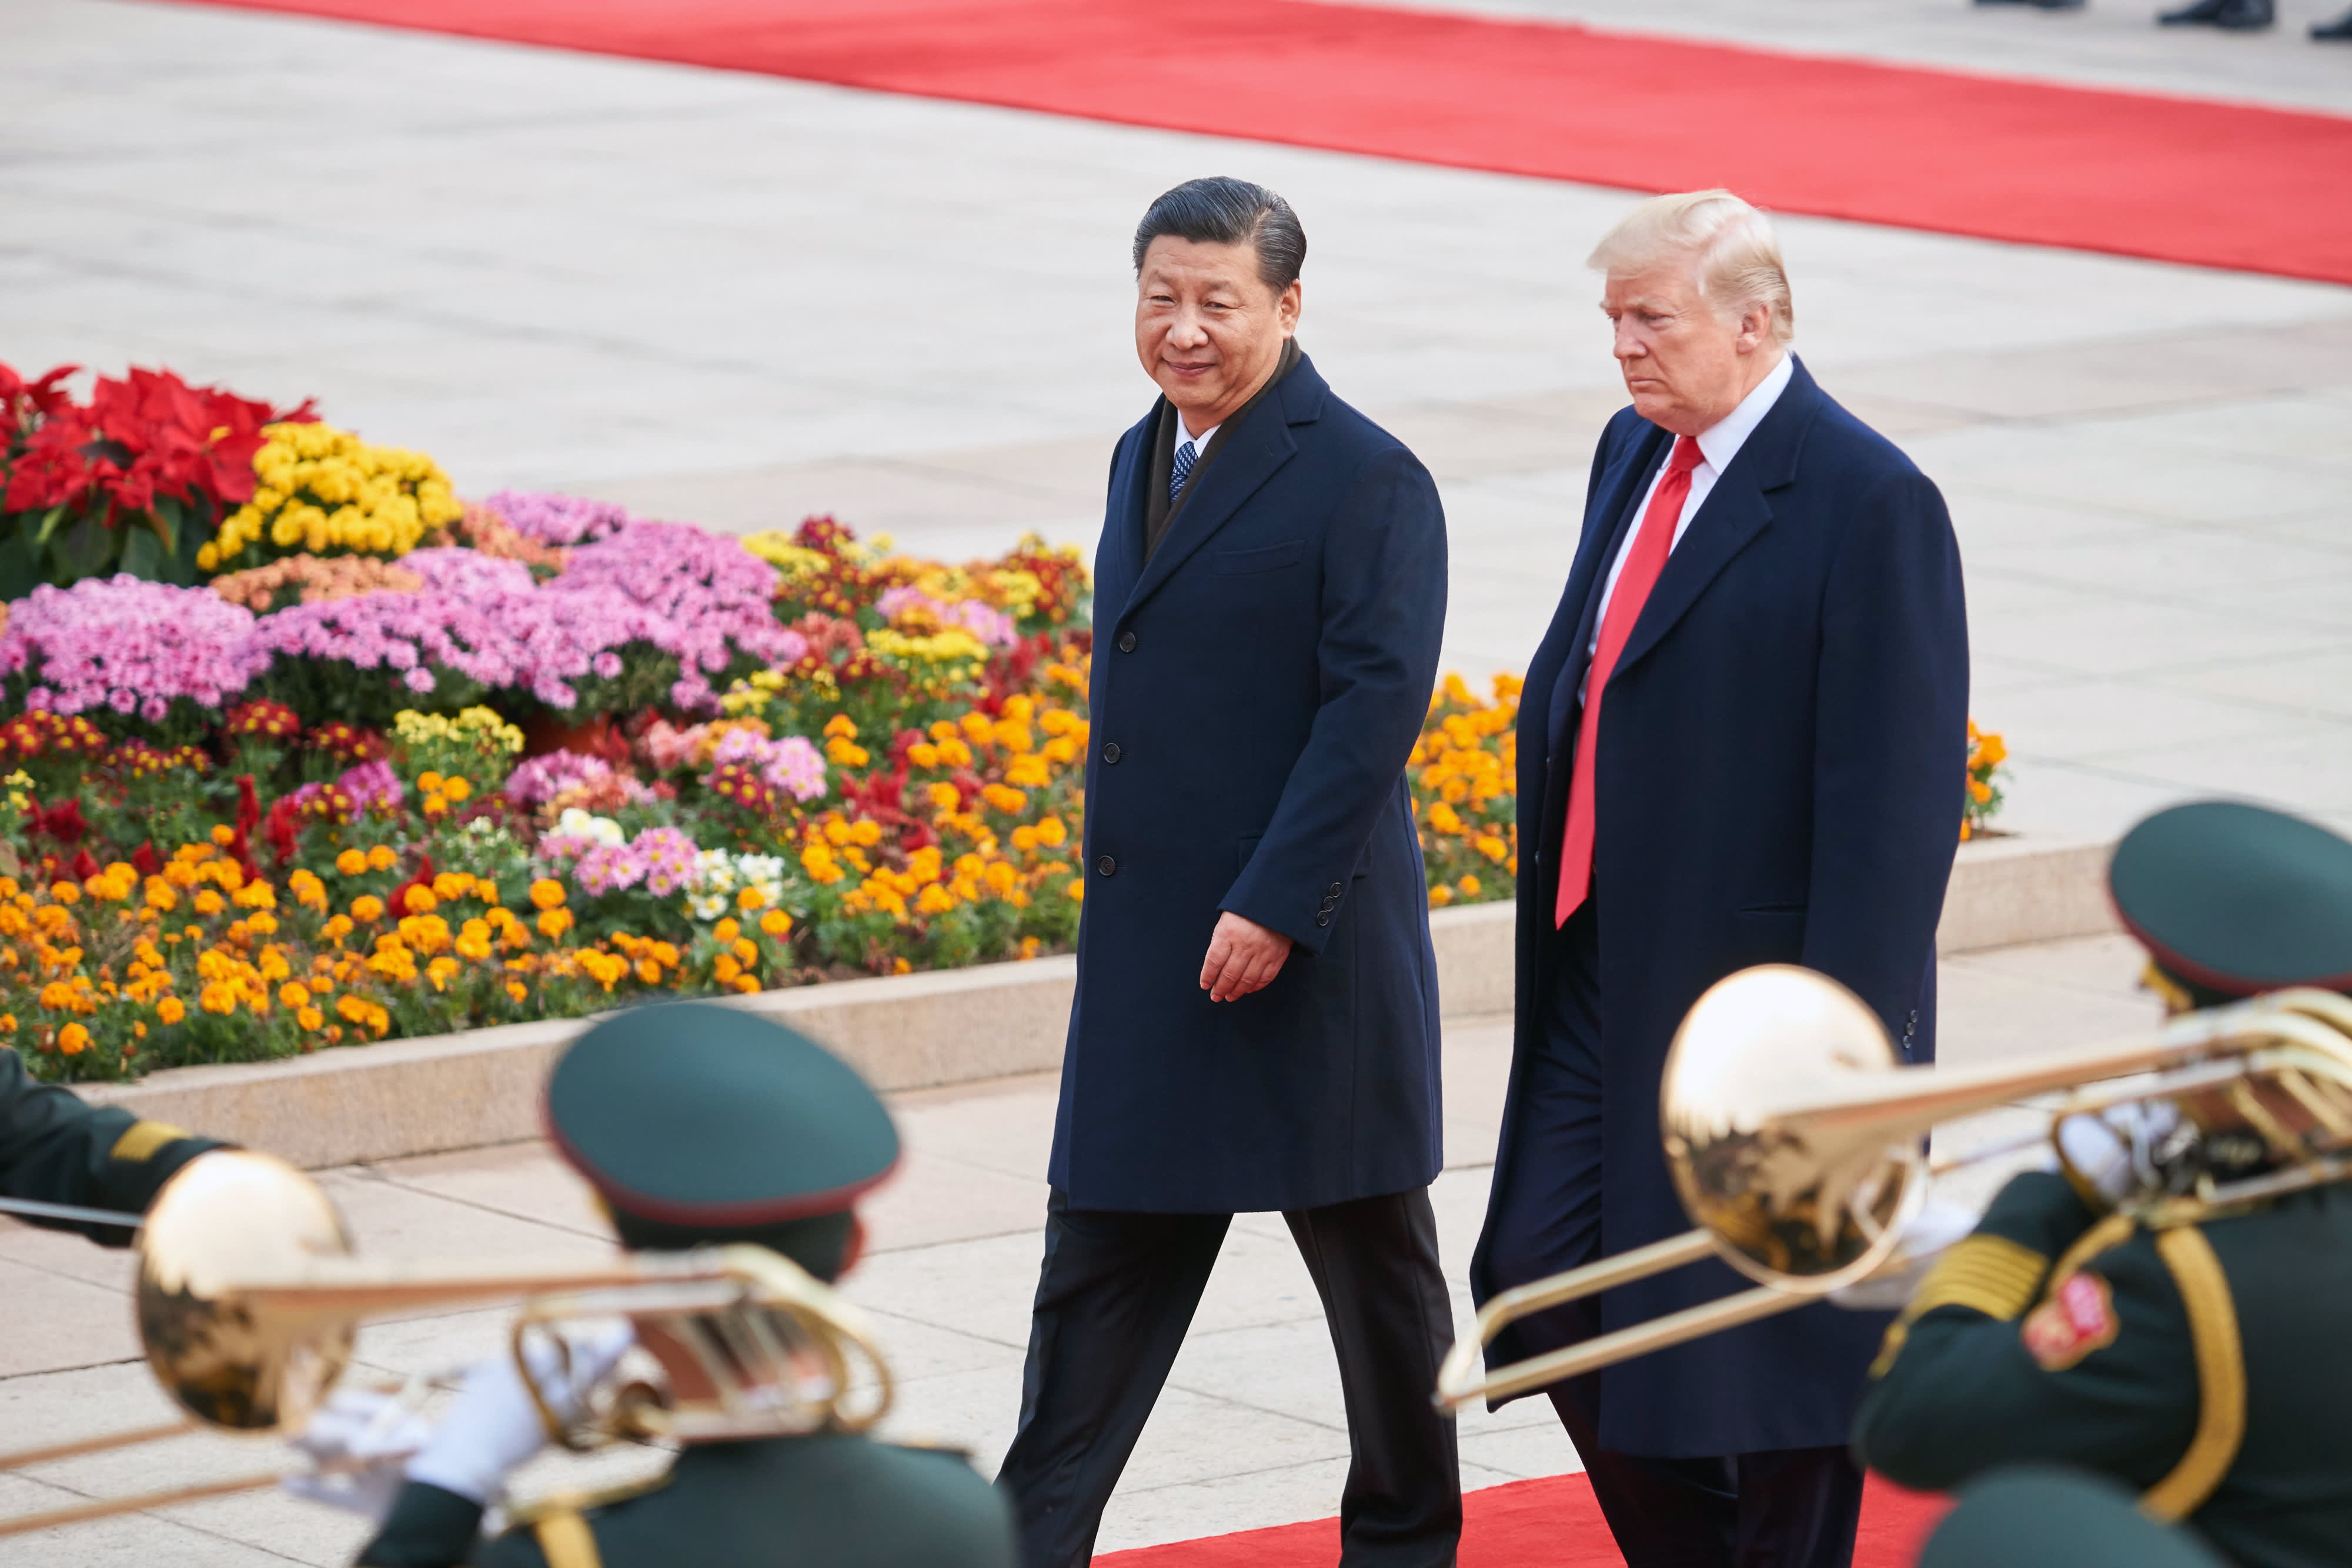 US and China disagree on the size of agriculture purchases, report says